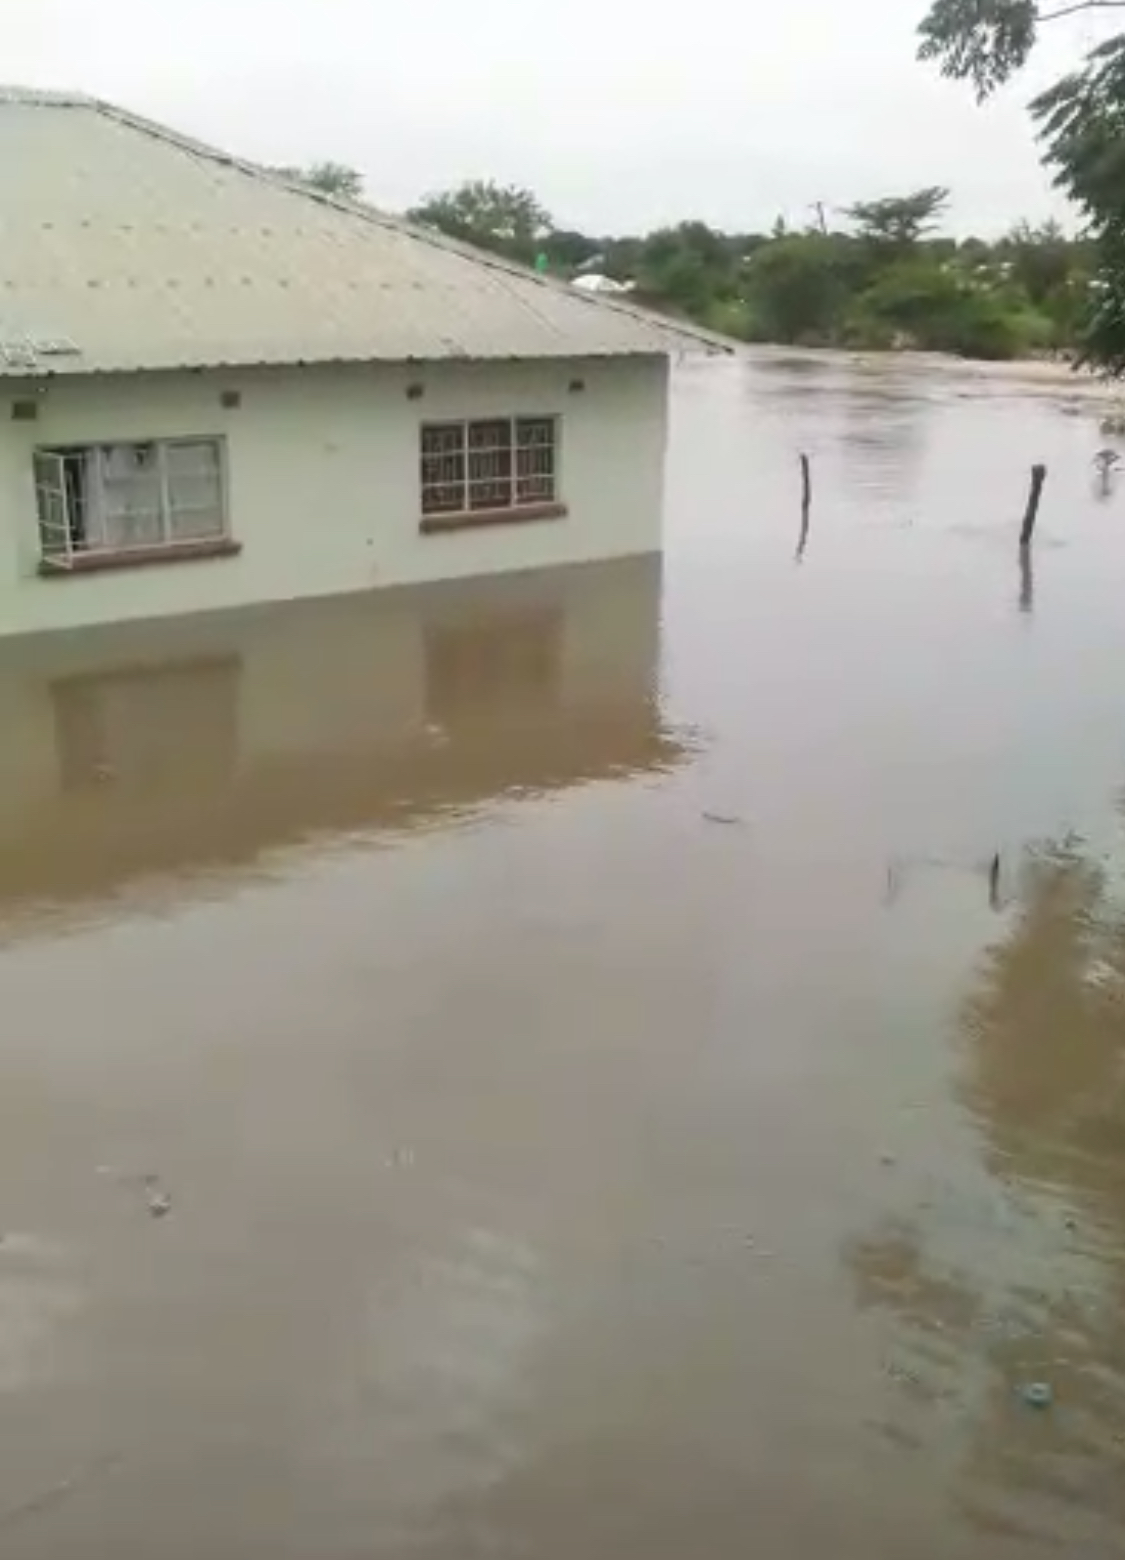 Floods continue ravaging Zambia